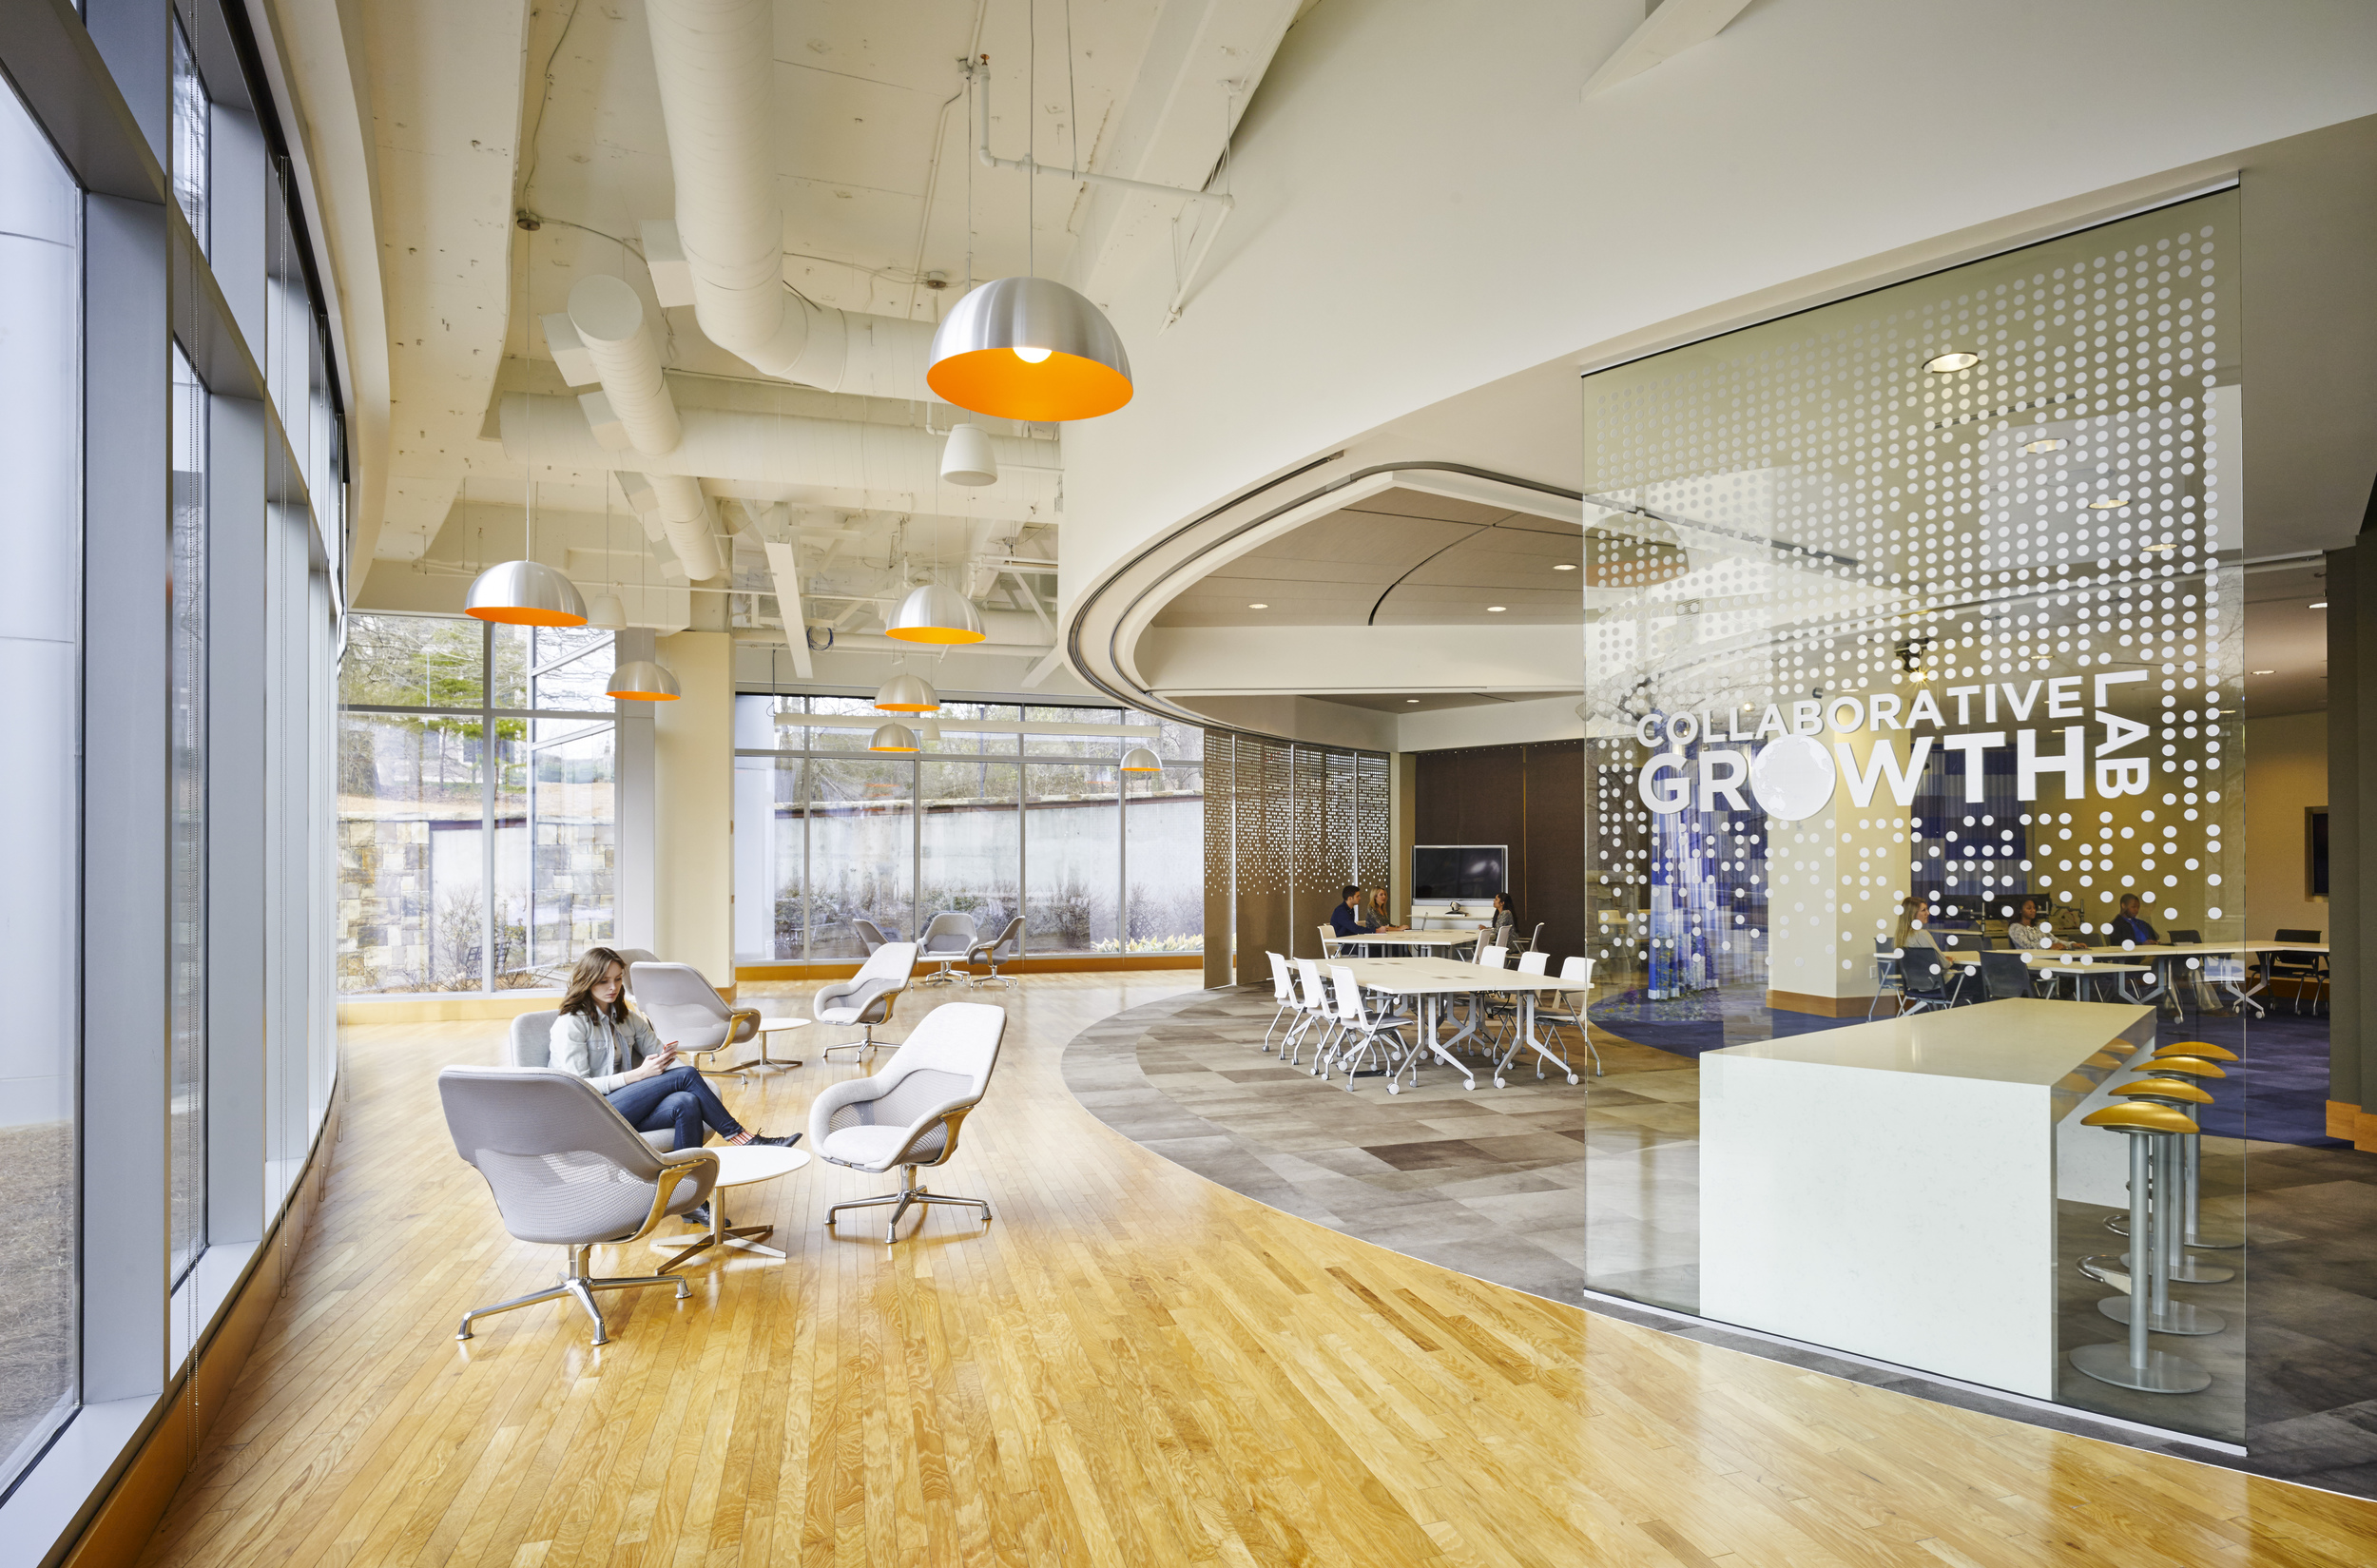 Newell Rubbermaid, Collaborative Growth Lab | Atlanta, GA | Photo by Hedrick Blessing